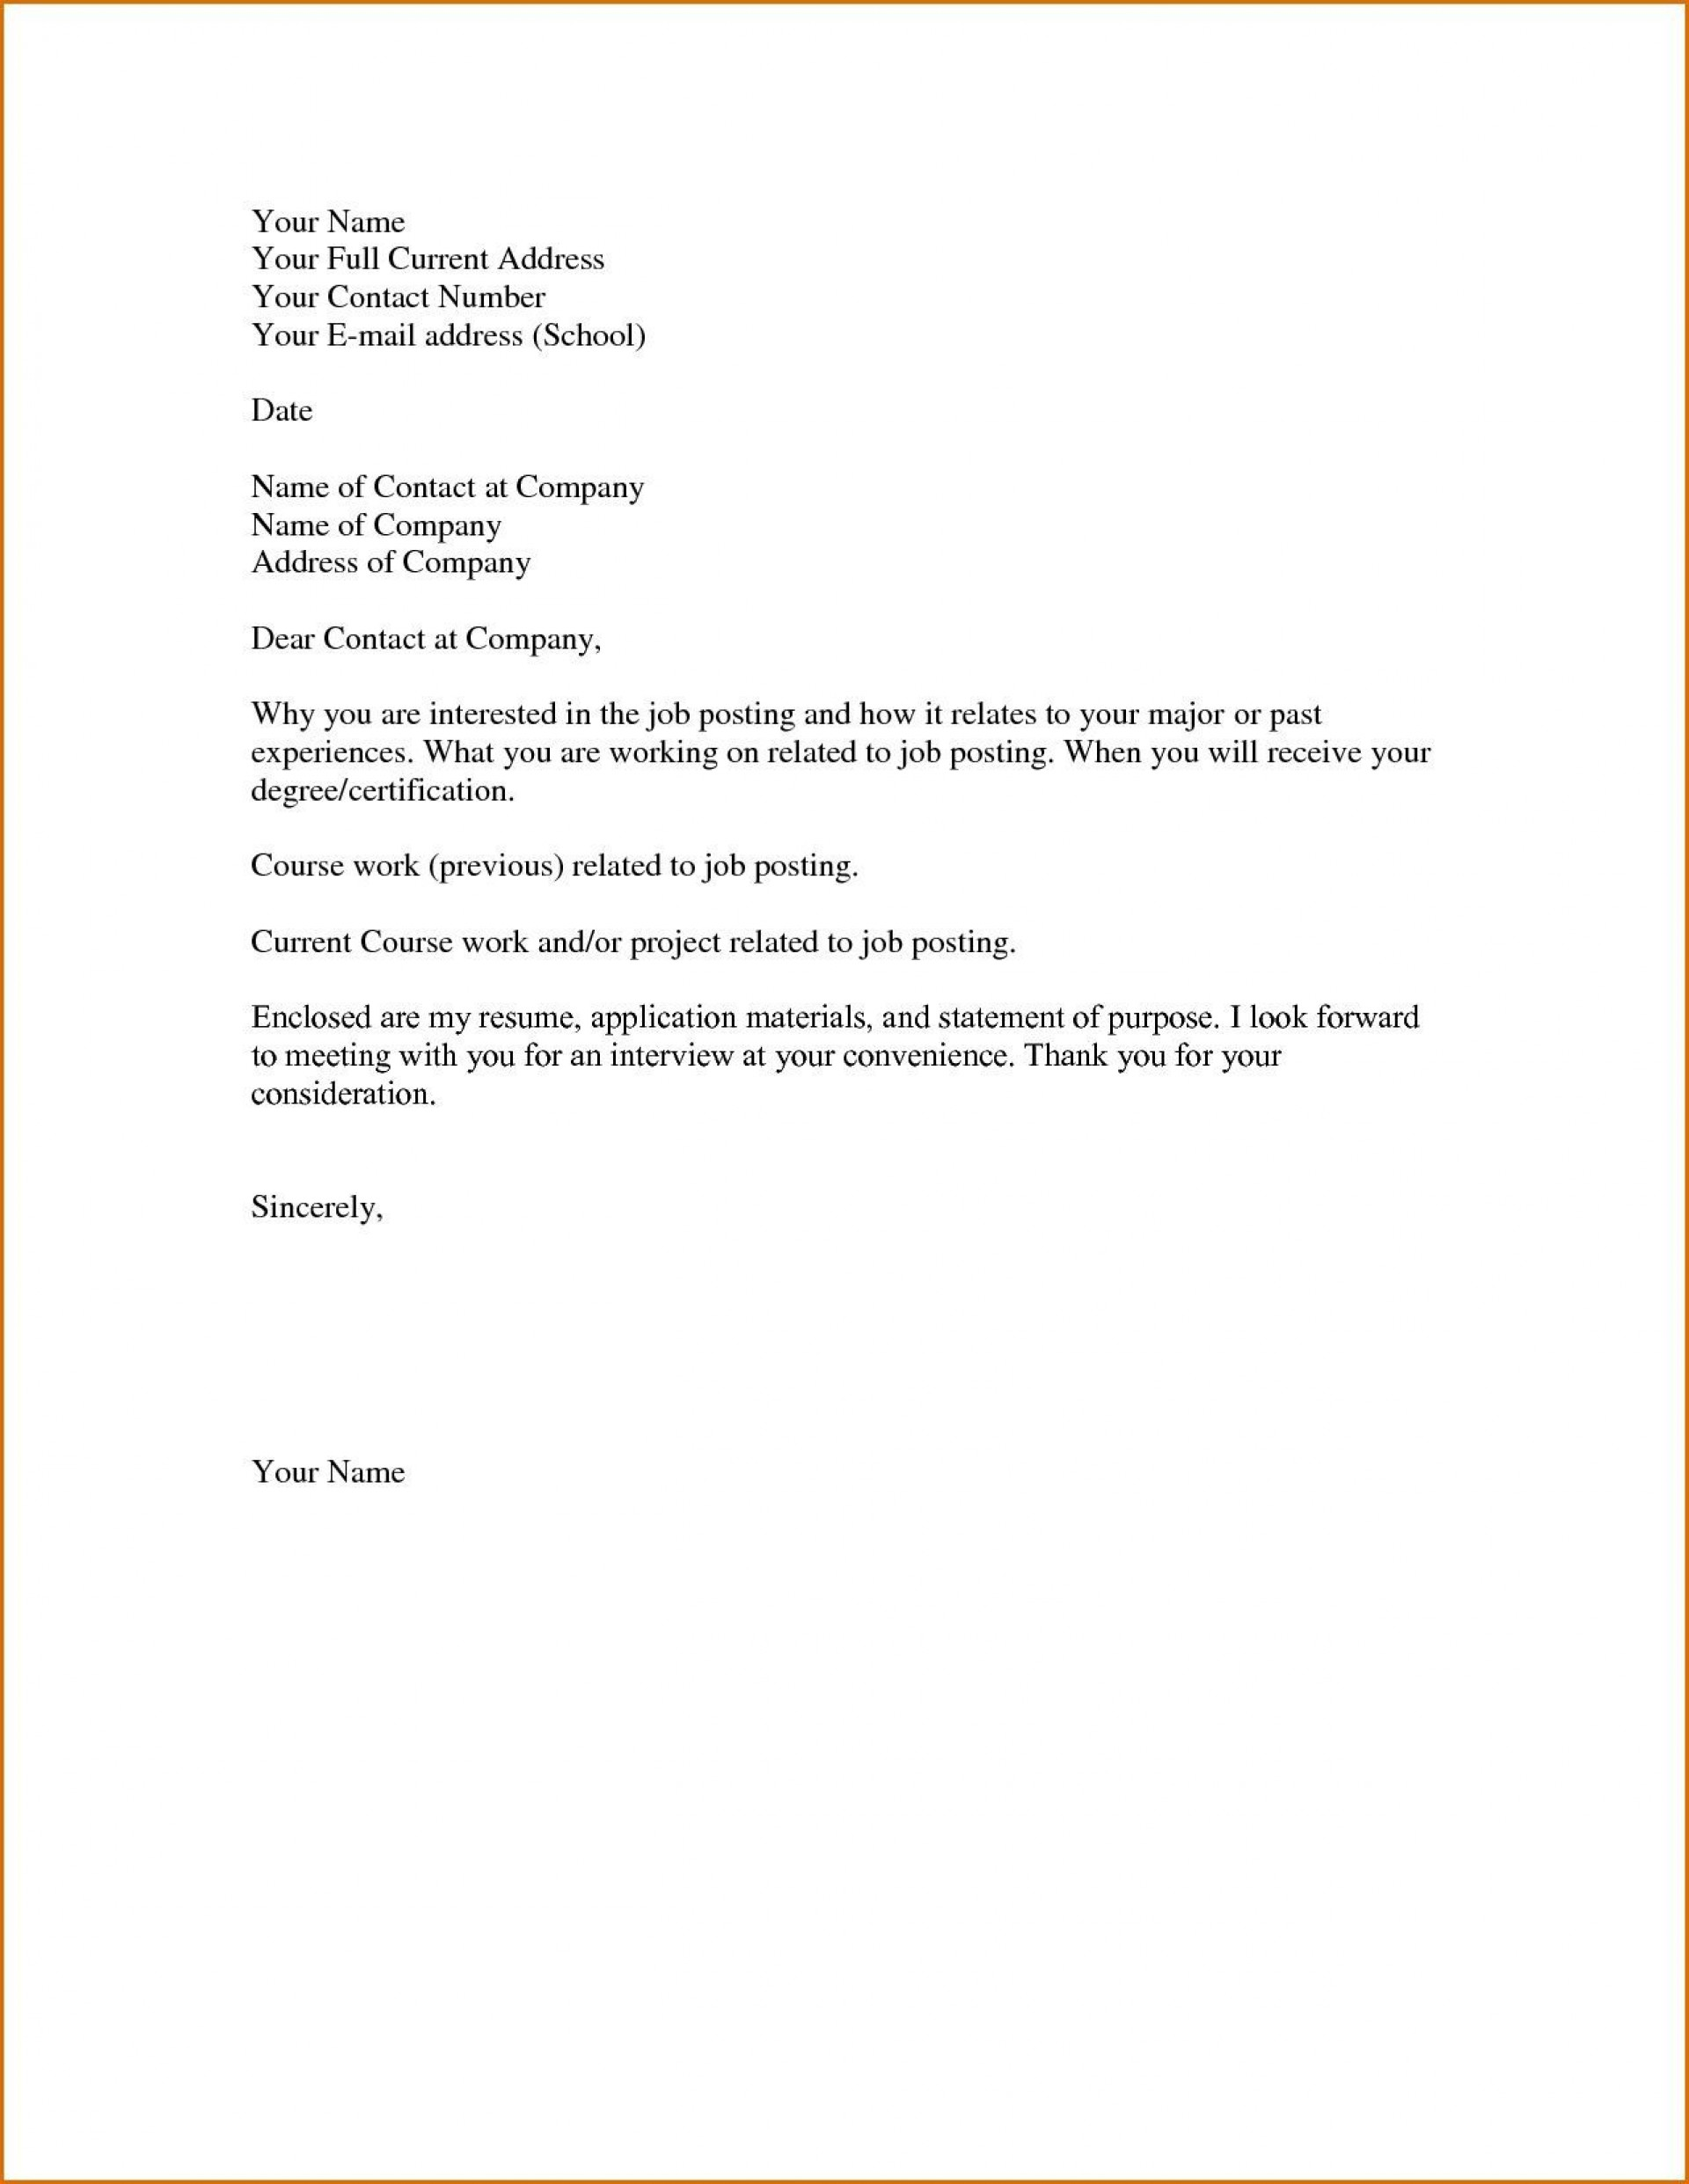 003 Stunning Basic Covering Letter Template Picture  Simple Application Word Example Of Job Cover1920